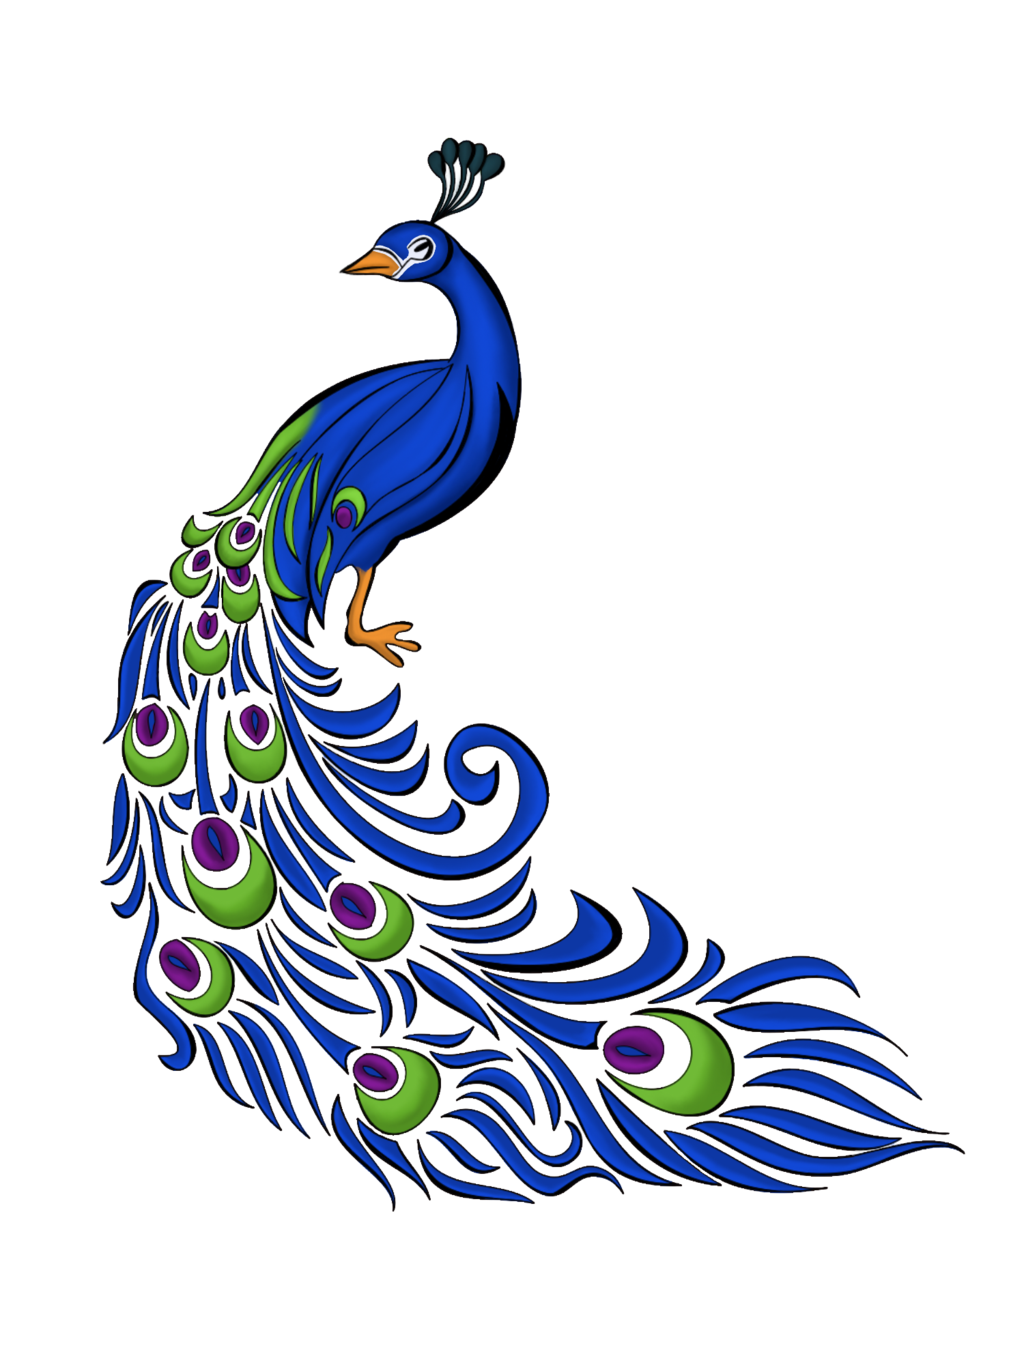 peacock feather vector free graphics and art jobspapa awesome rh pinterest com peacock clipart free download peacock clipart images black and white